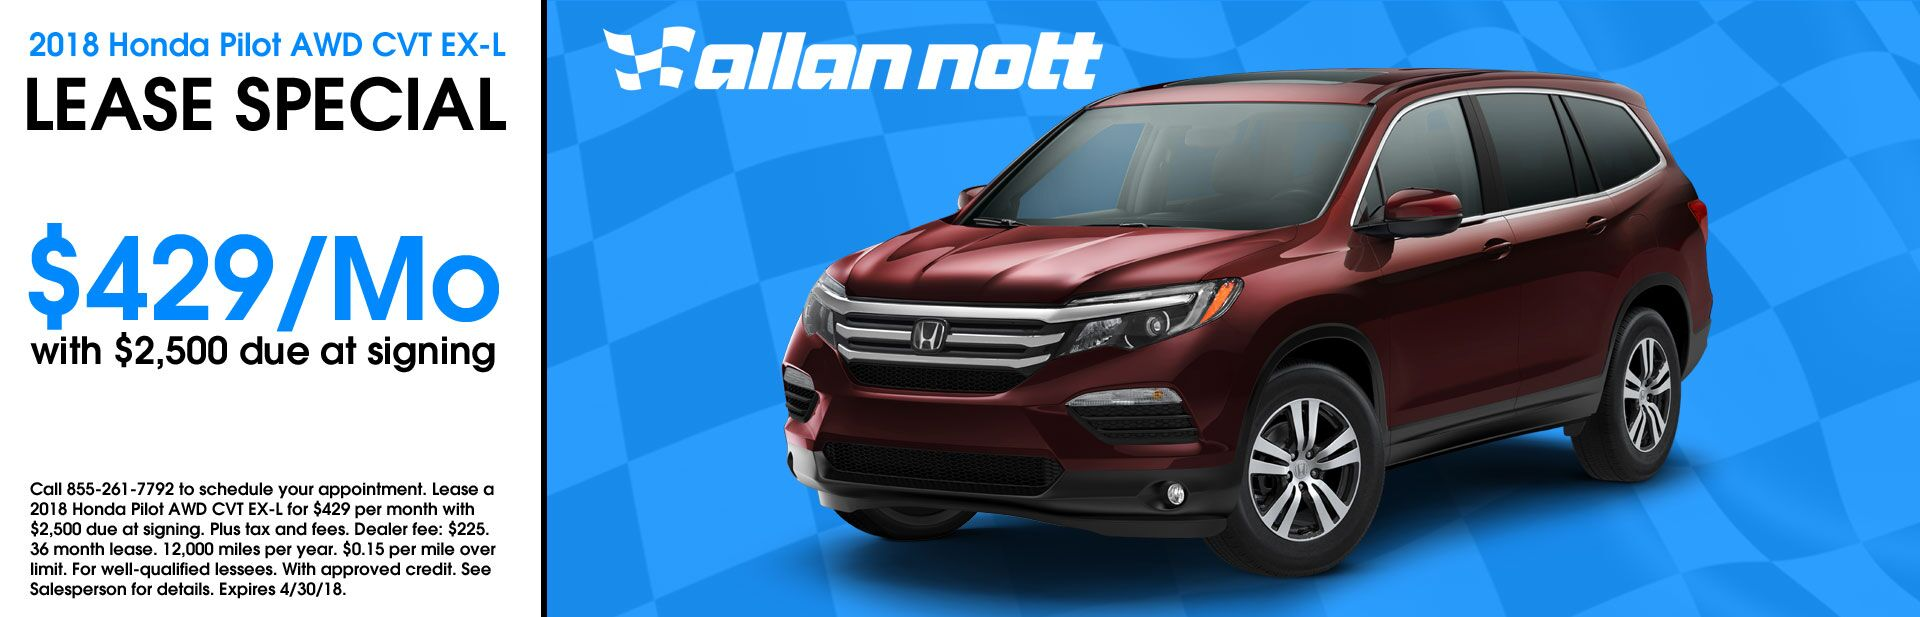 April 2018 - 2018 Honda Pilot AWD CVT EX-L Lease Special